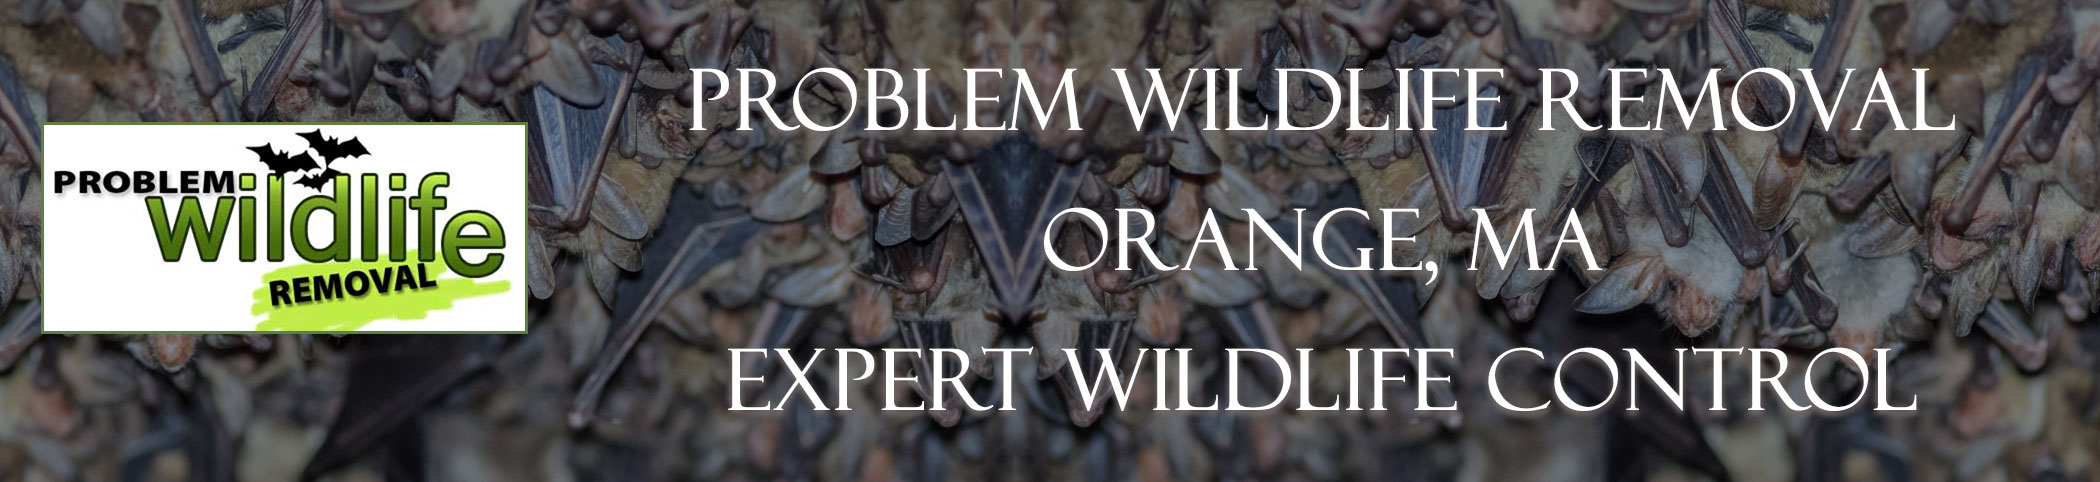 bat removal and bat exclusion by problem wildlife removal Orange ma